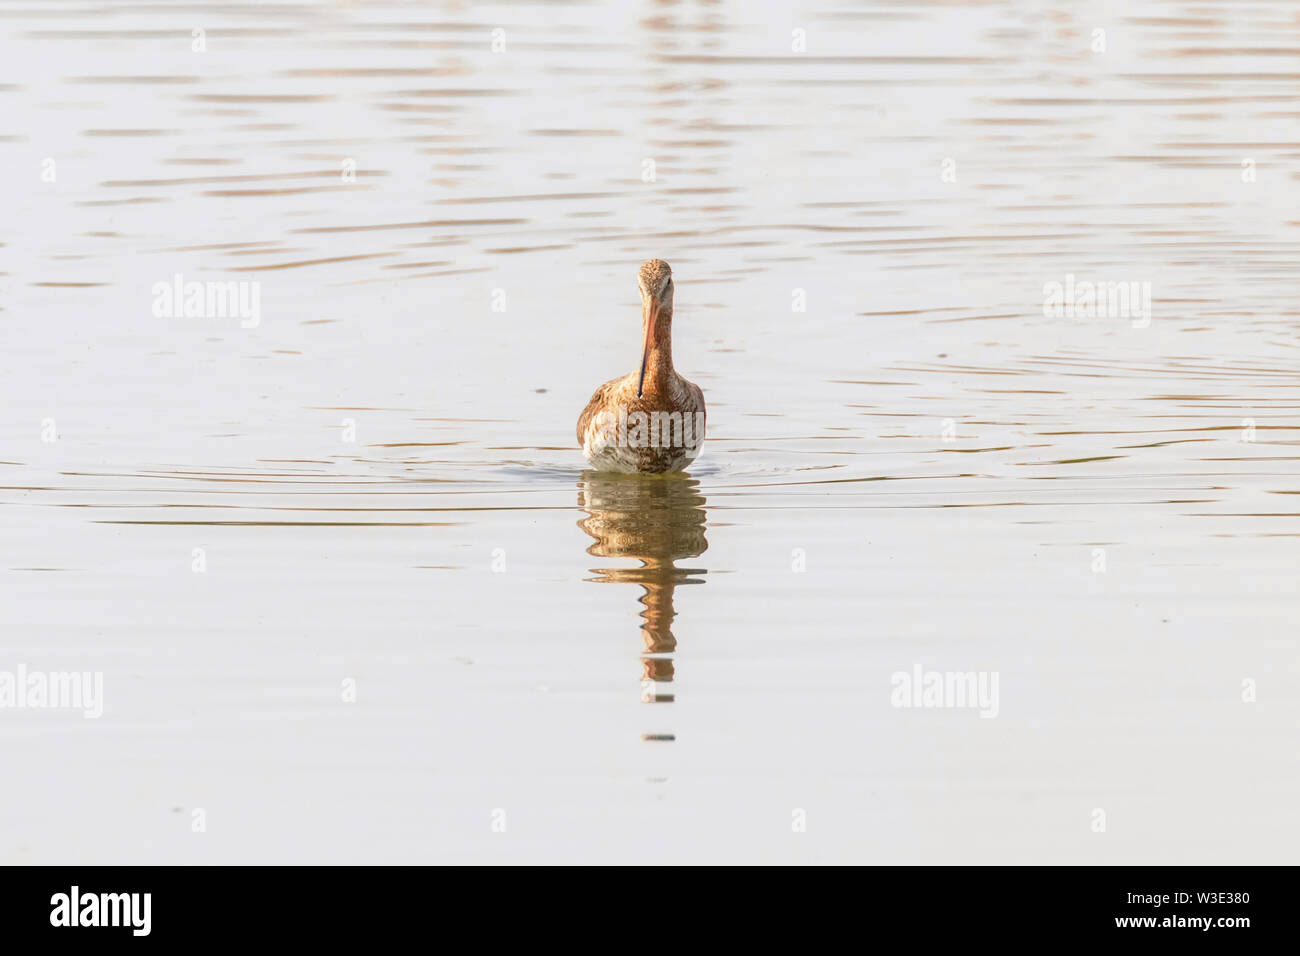 Black Tailed Godwit (Limosa limosa) Wader Bird Foraging in shallow water - Stock Image